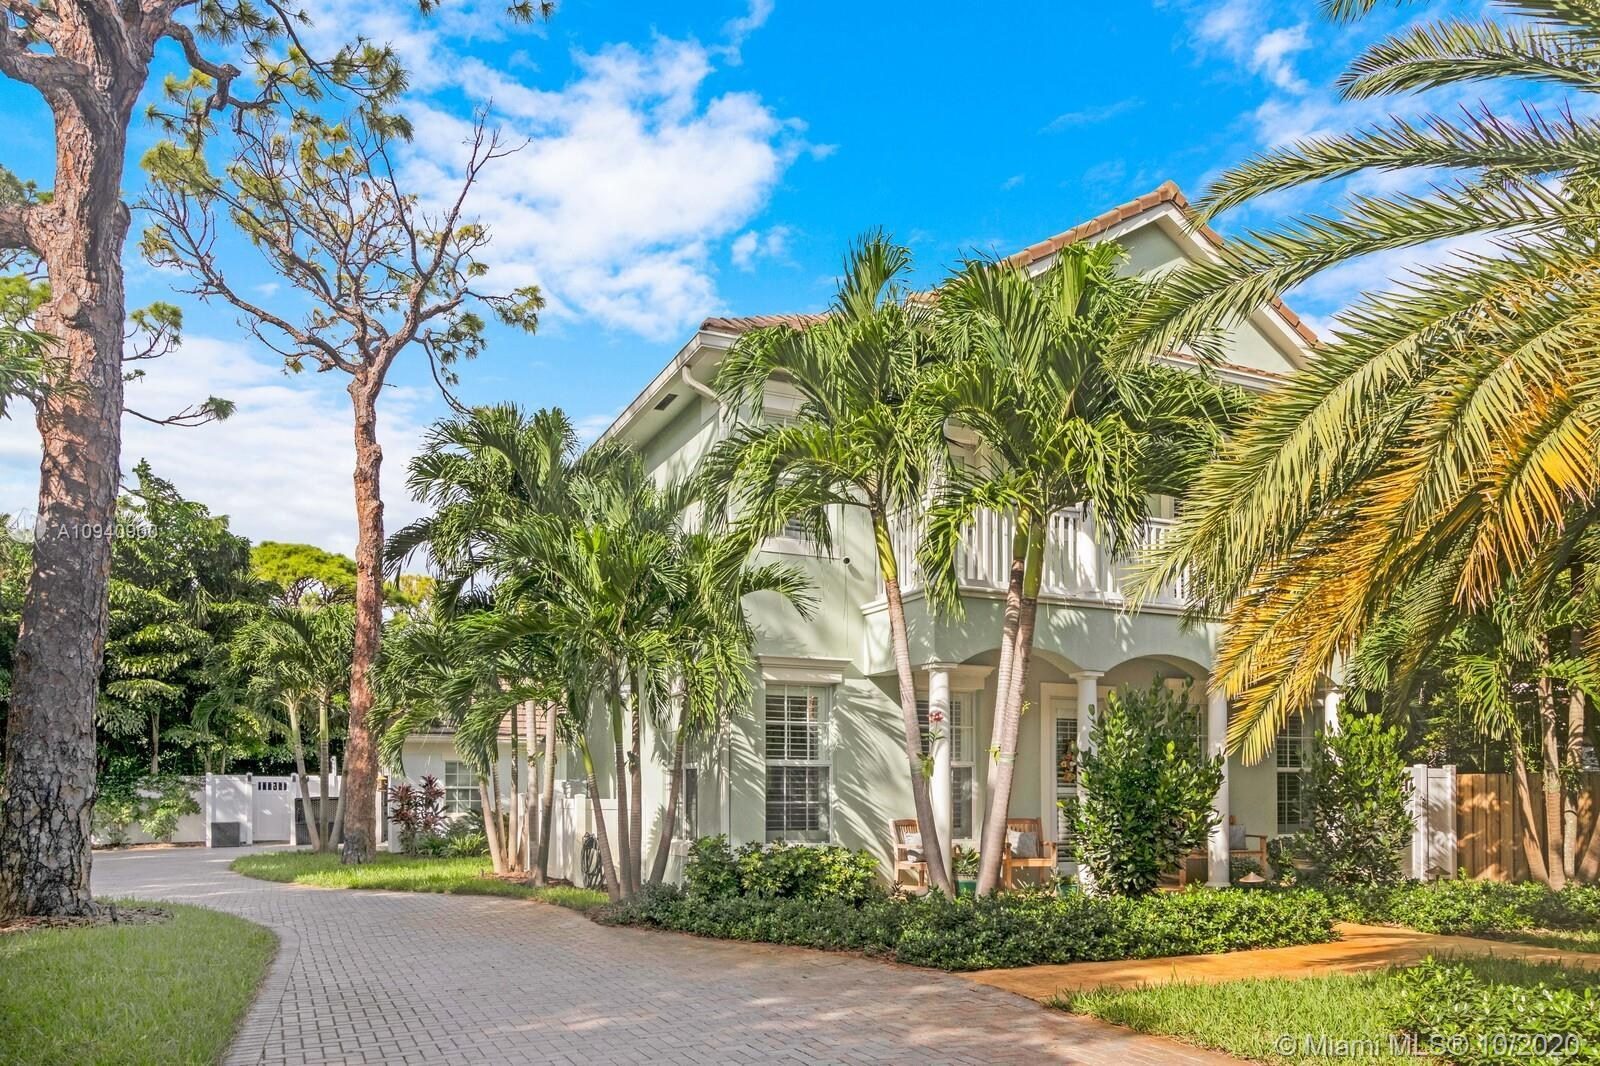 LOCATION LOCATION!! SHORT WALK TO WILTON DRIVE for all amenities, gym, spa, parks, restaurants and s